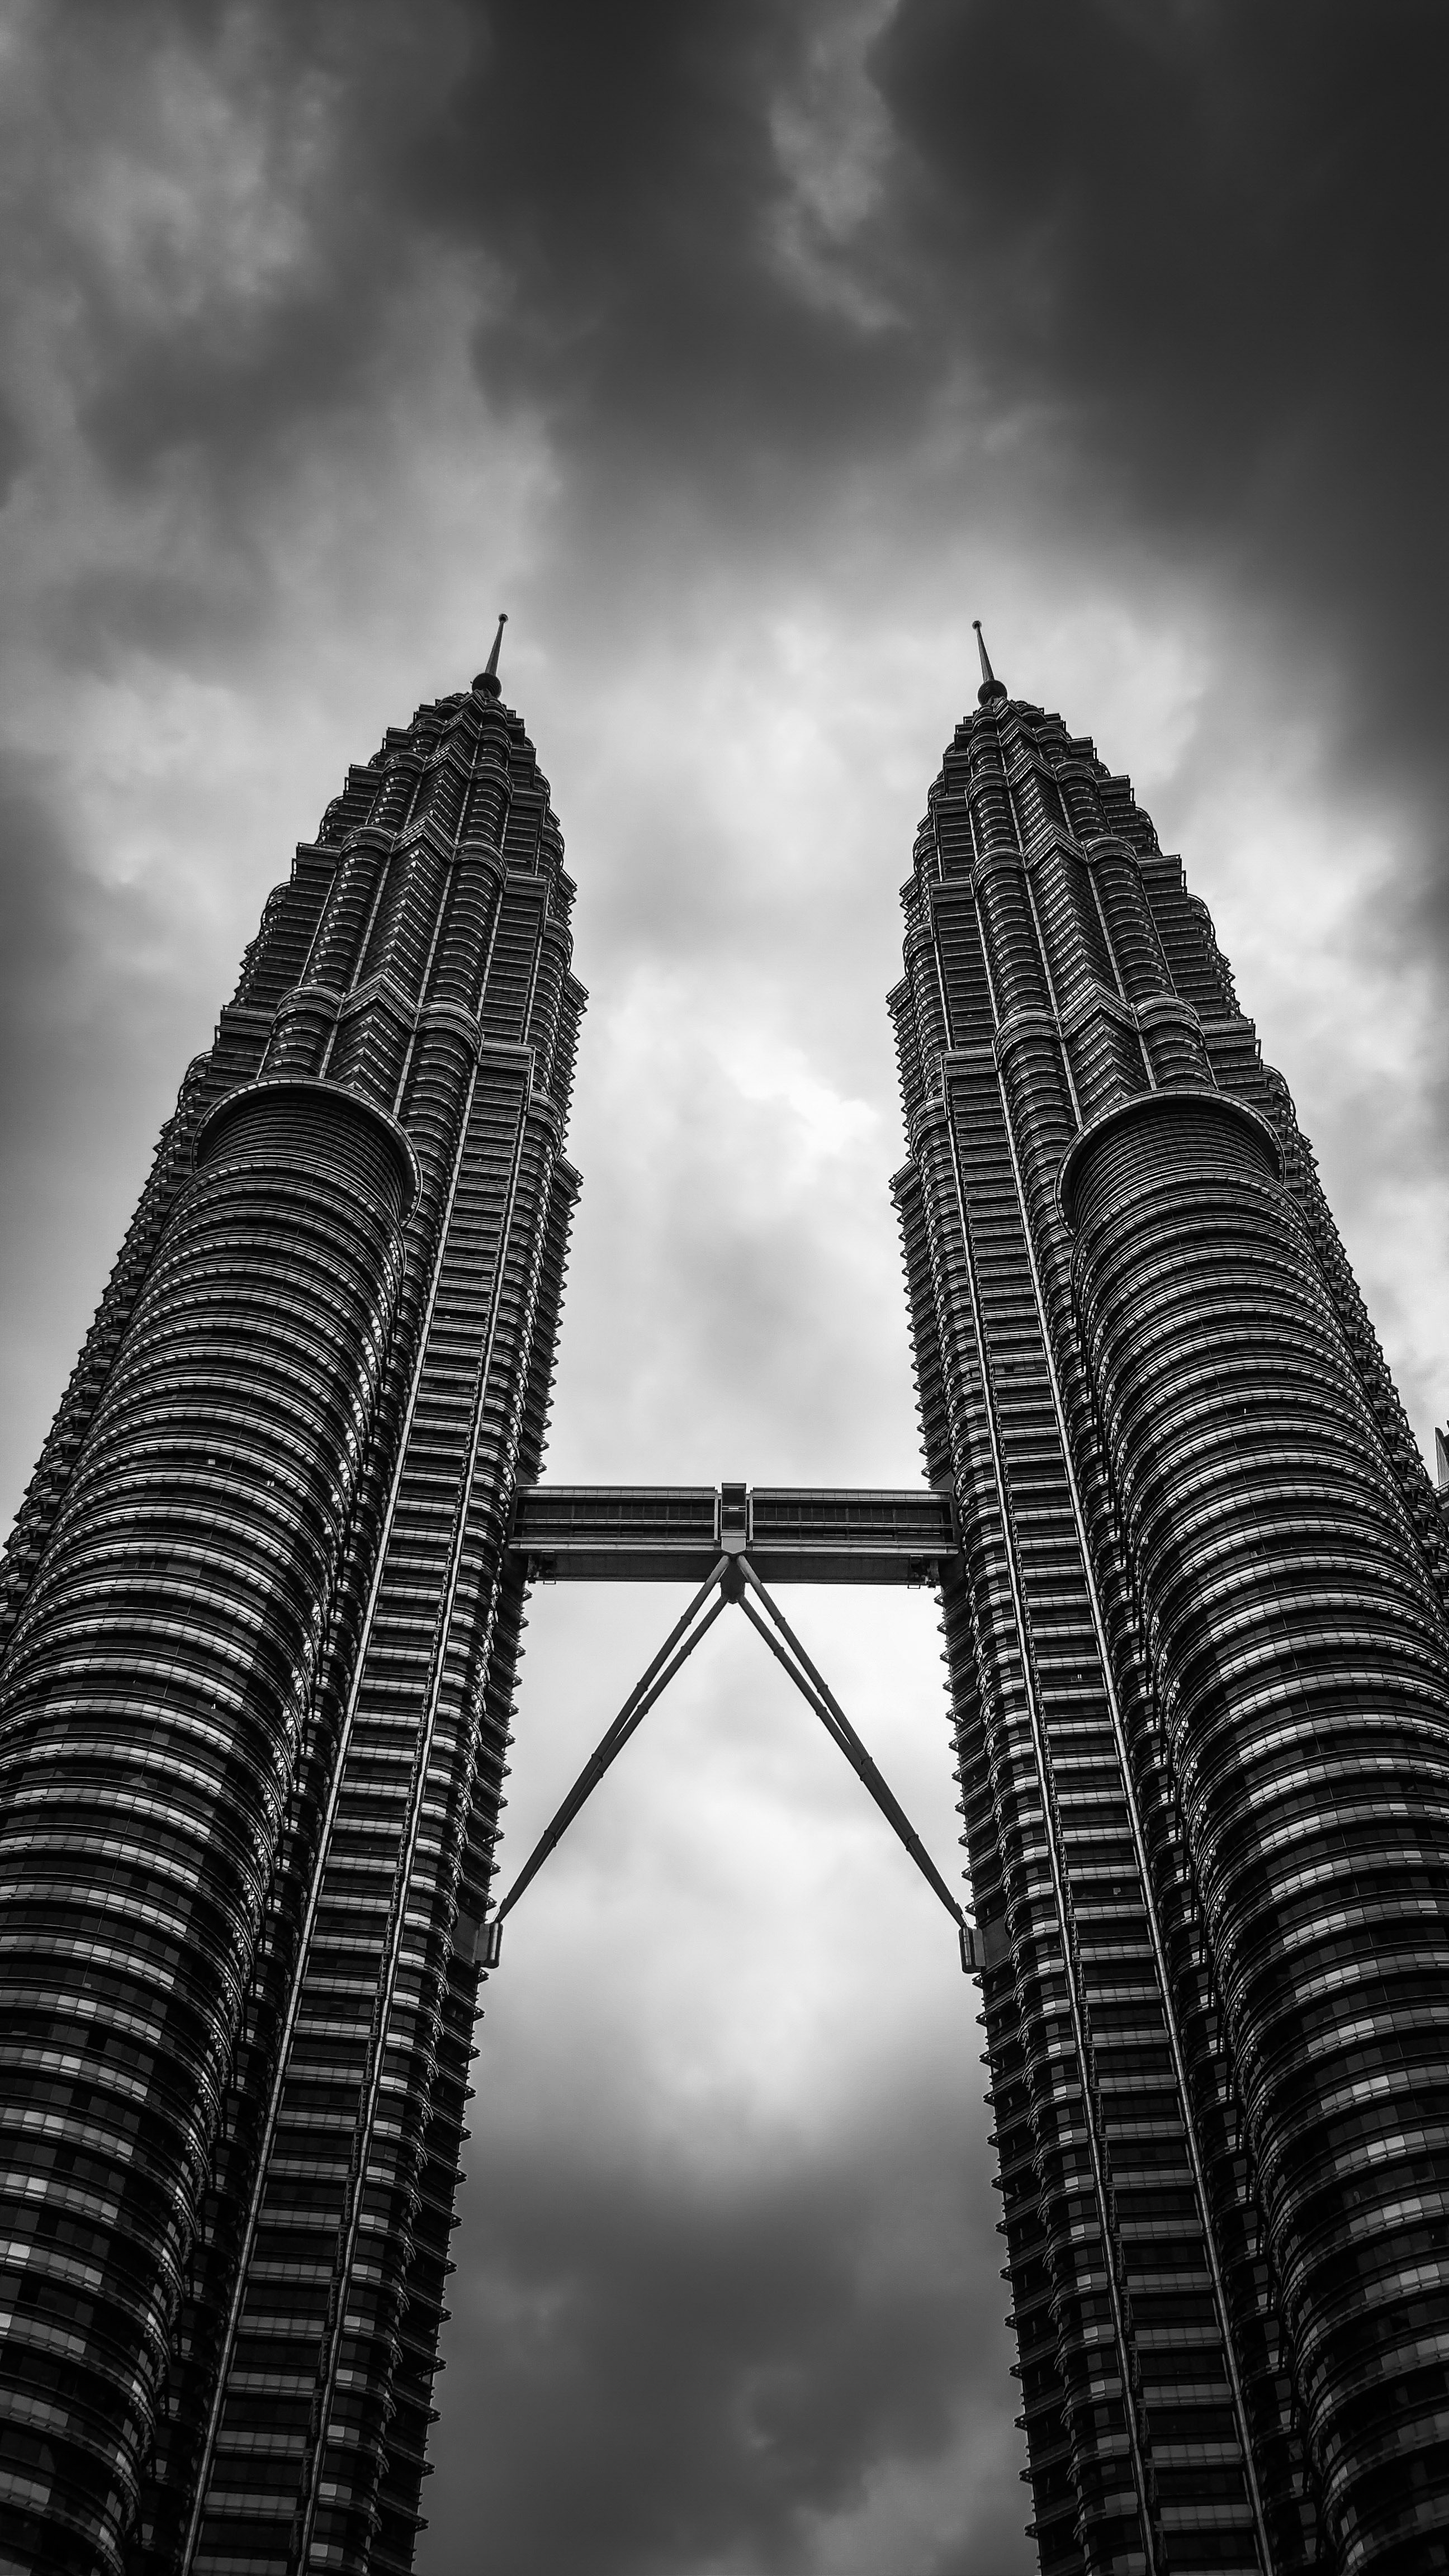 The Petronas Twin Towers in Malaysia were experiencing coating failure in gas line jointing flanges.